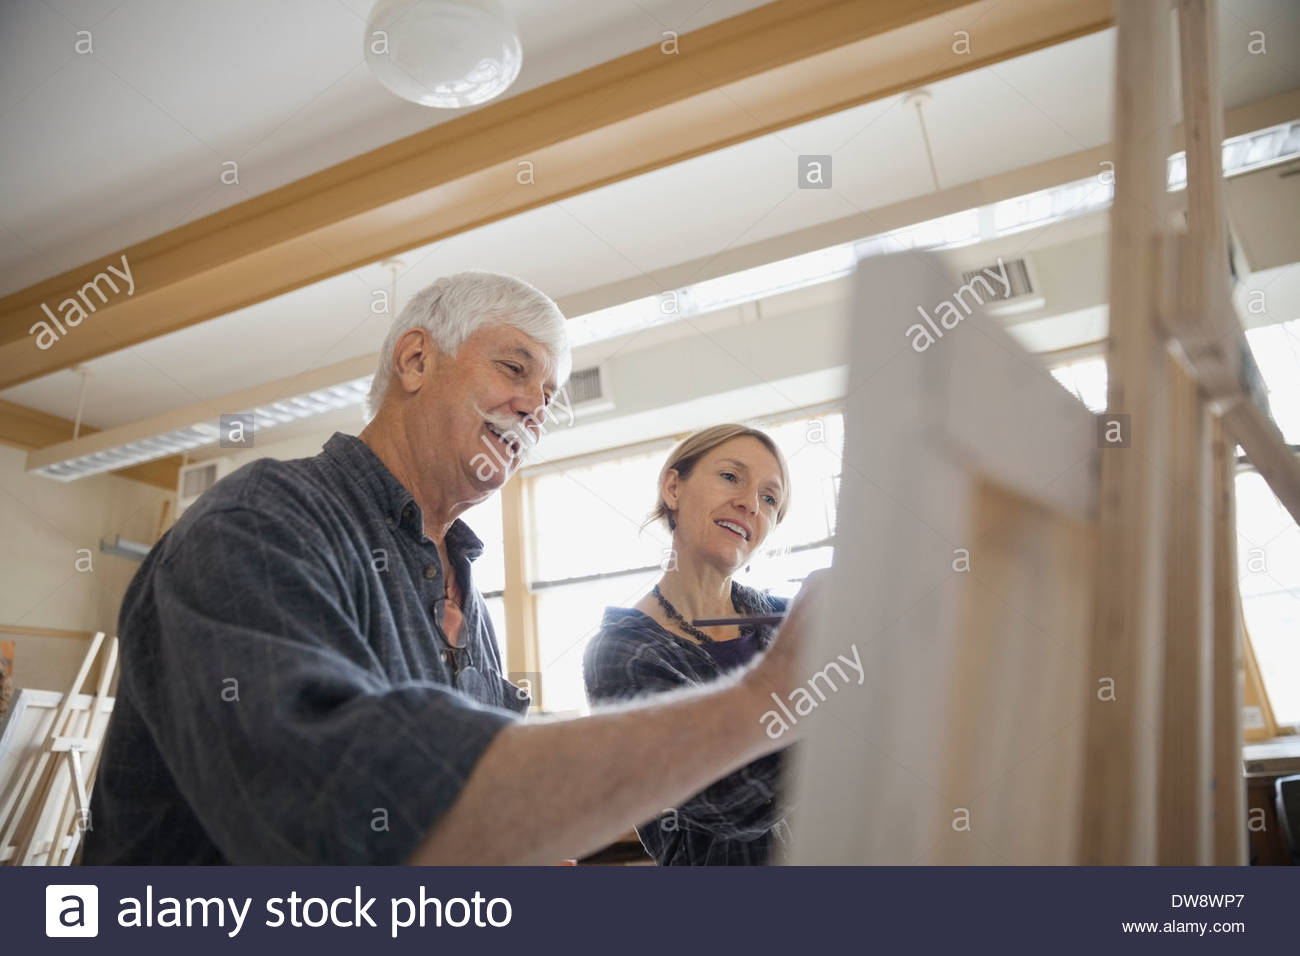 Instructor and student looking at painting on easel - Stock Image